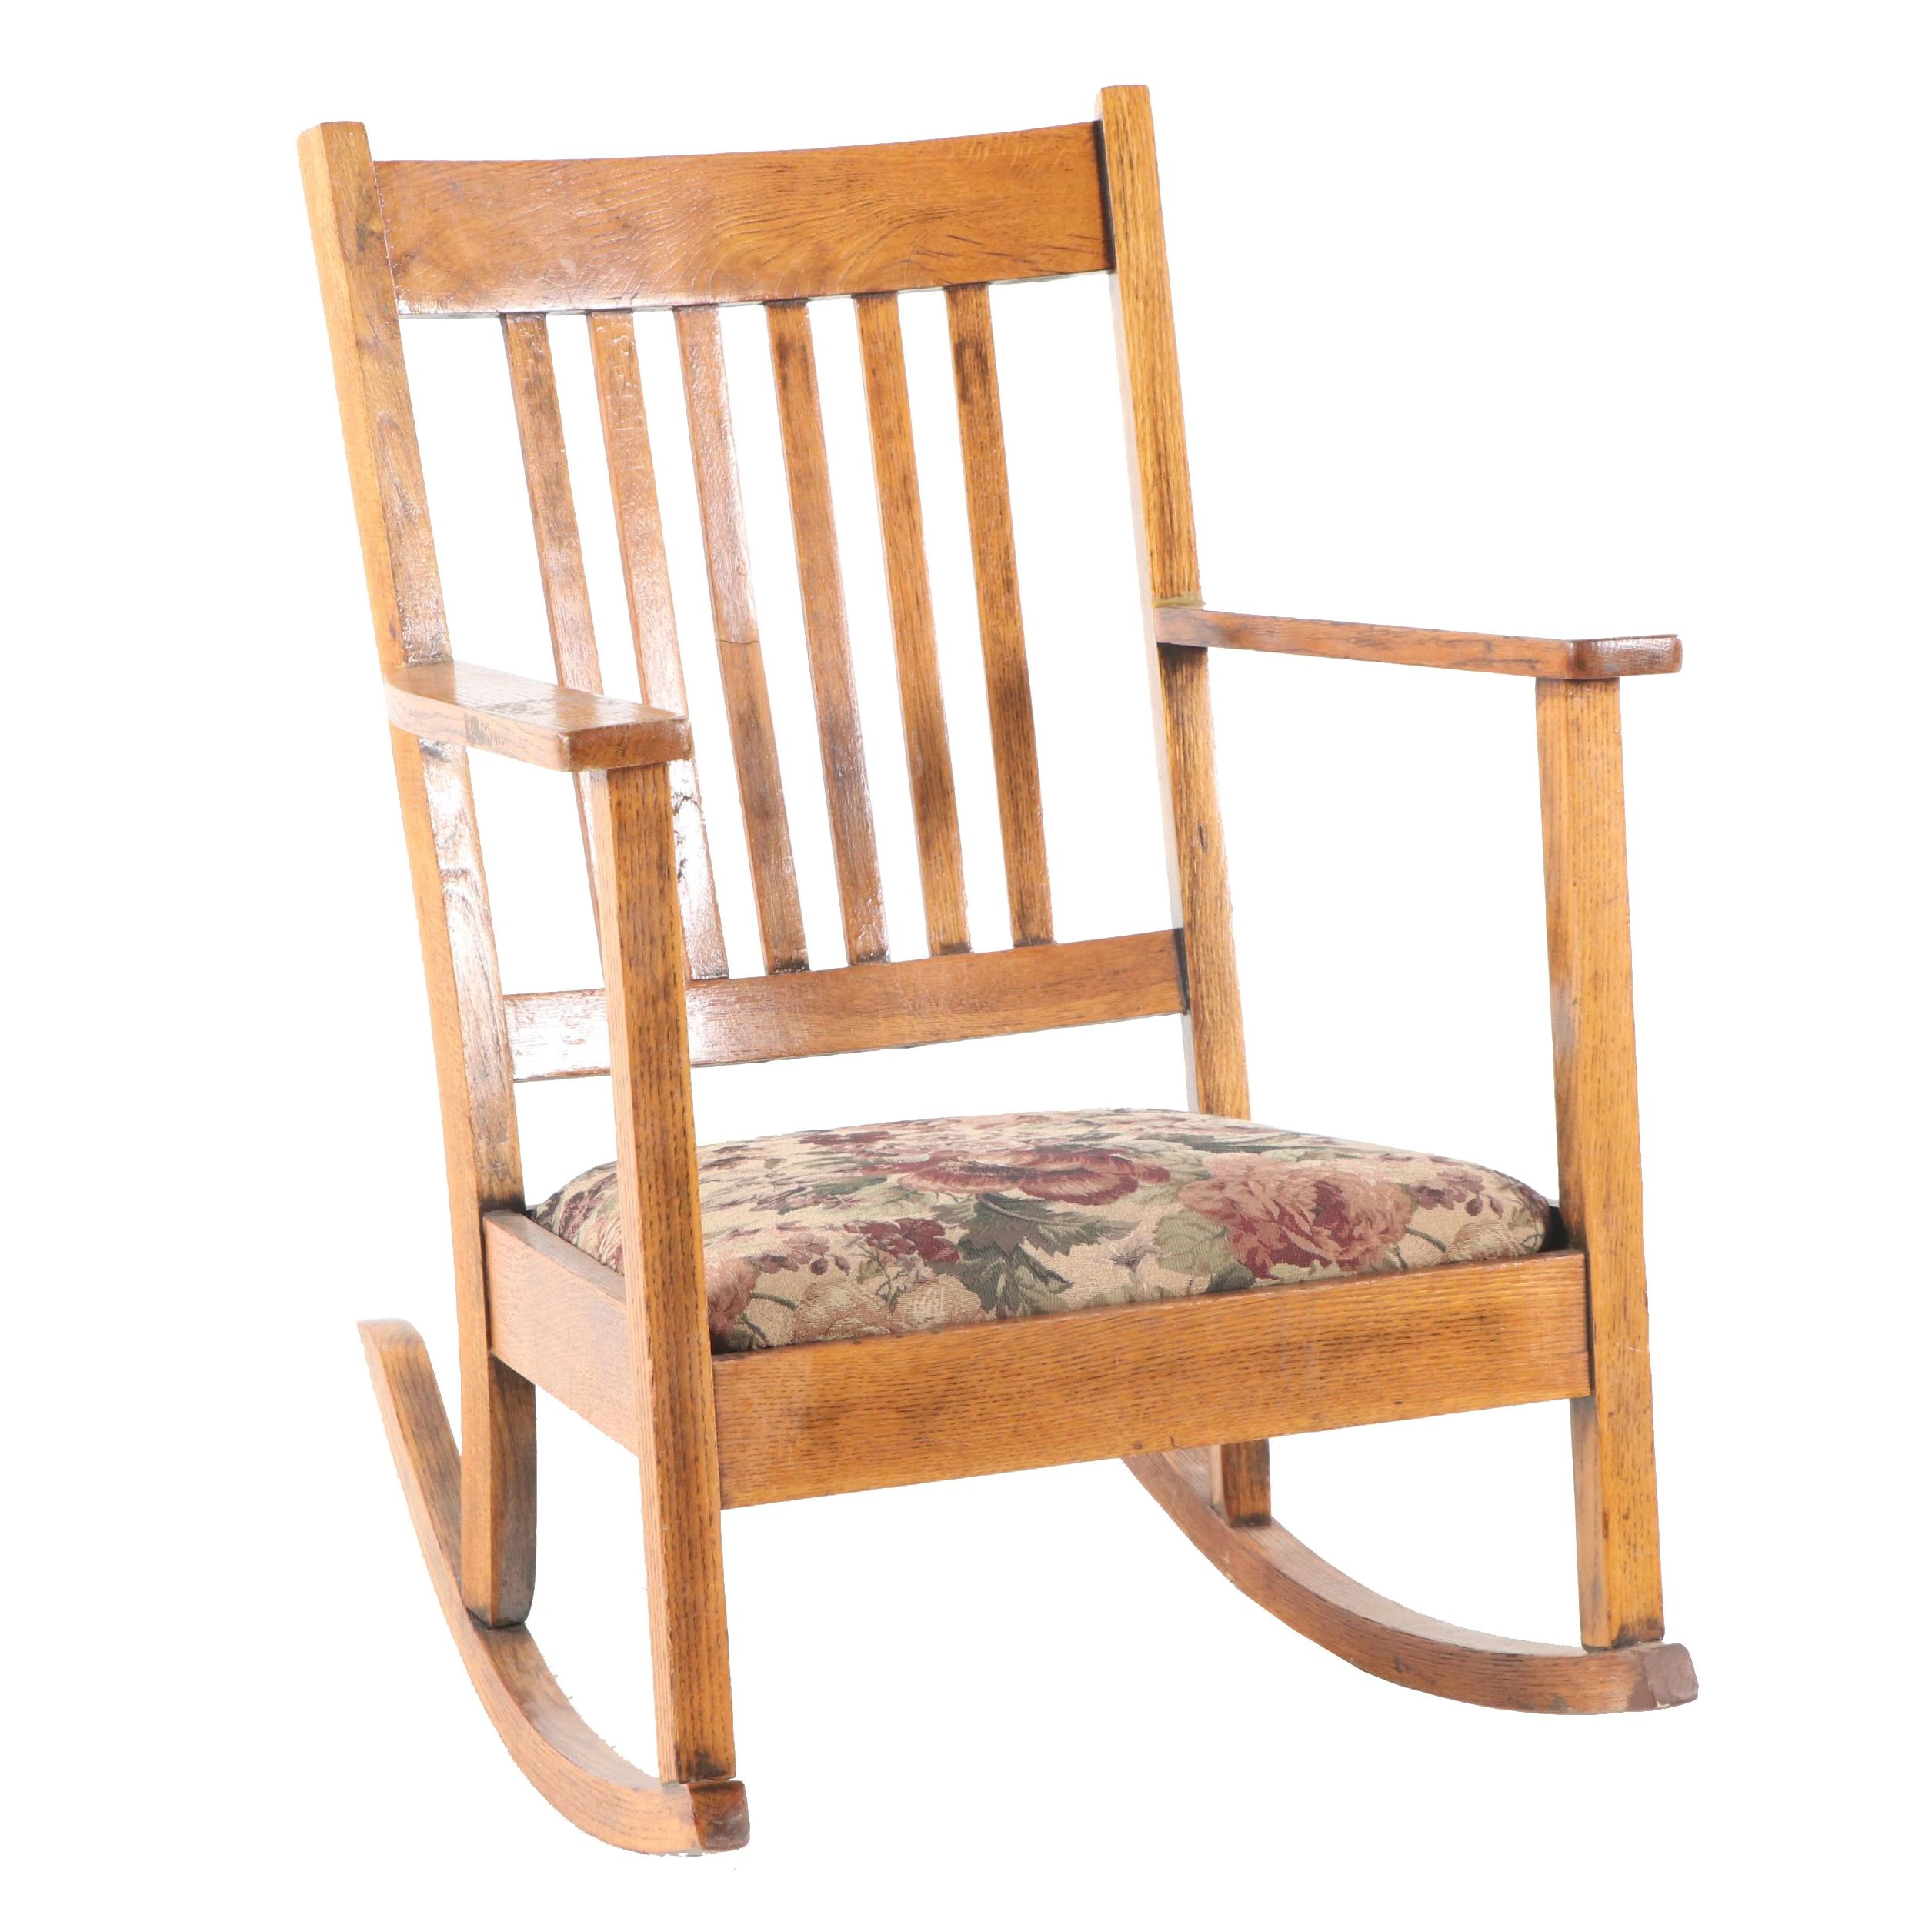 Craftsman Style Oak Rocking Chair, 20th Century